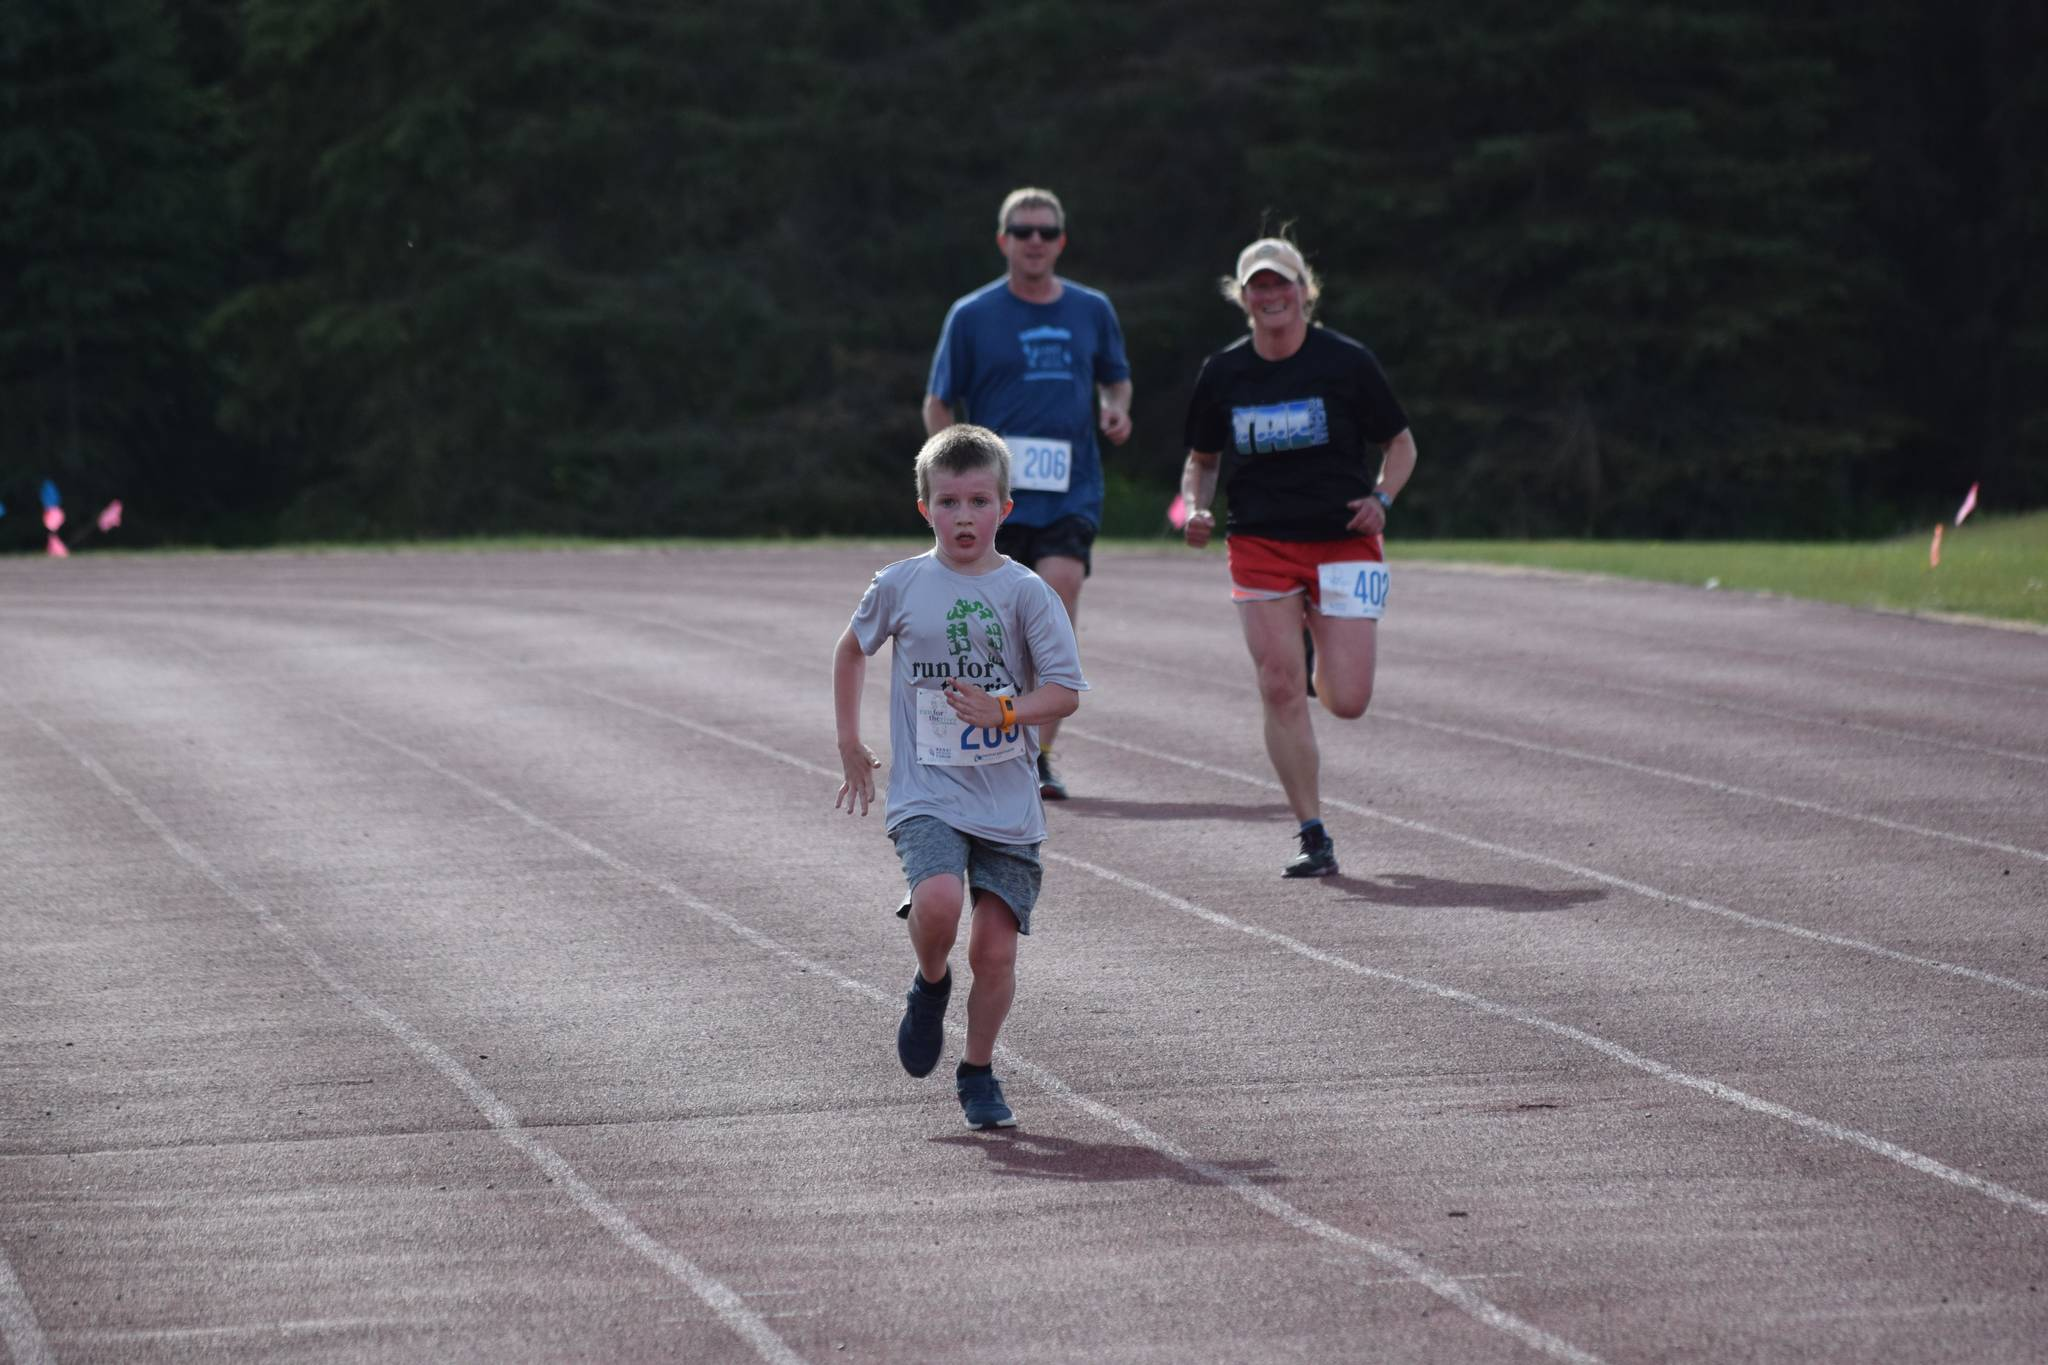 Gus Reimer crosses the finish line in front of Adam Reimer and Julie Laker during the first race of the Salmon Run Series at Skyview Middle School on Wednesday, July 7, 2021. (Camille Botello / Peninsula Clarion)